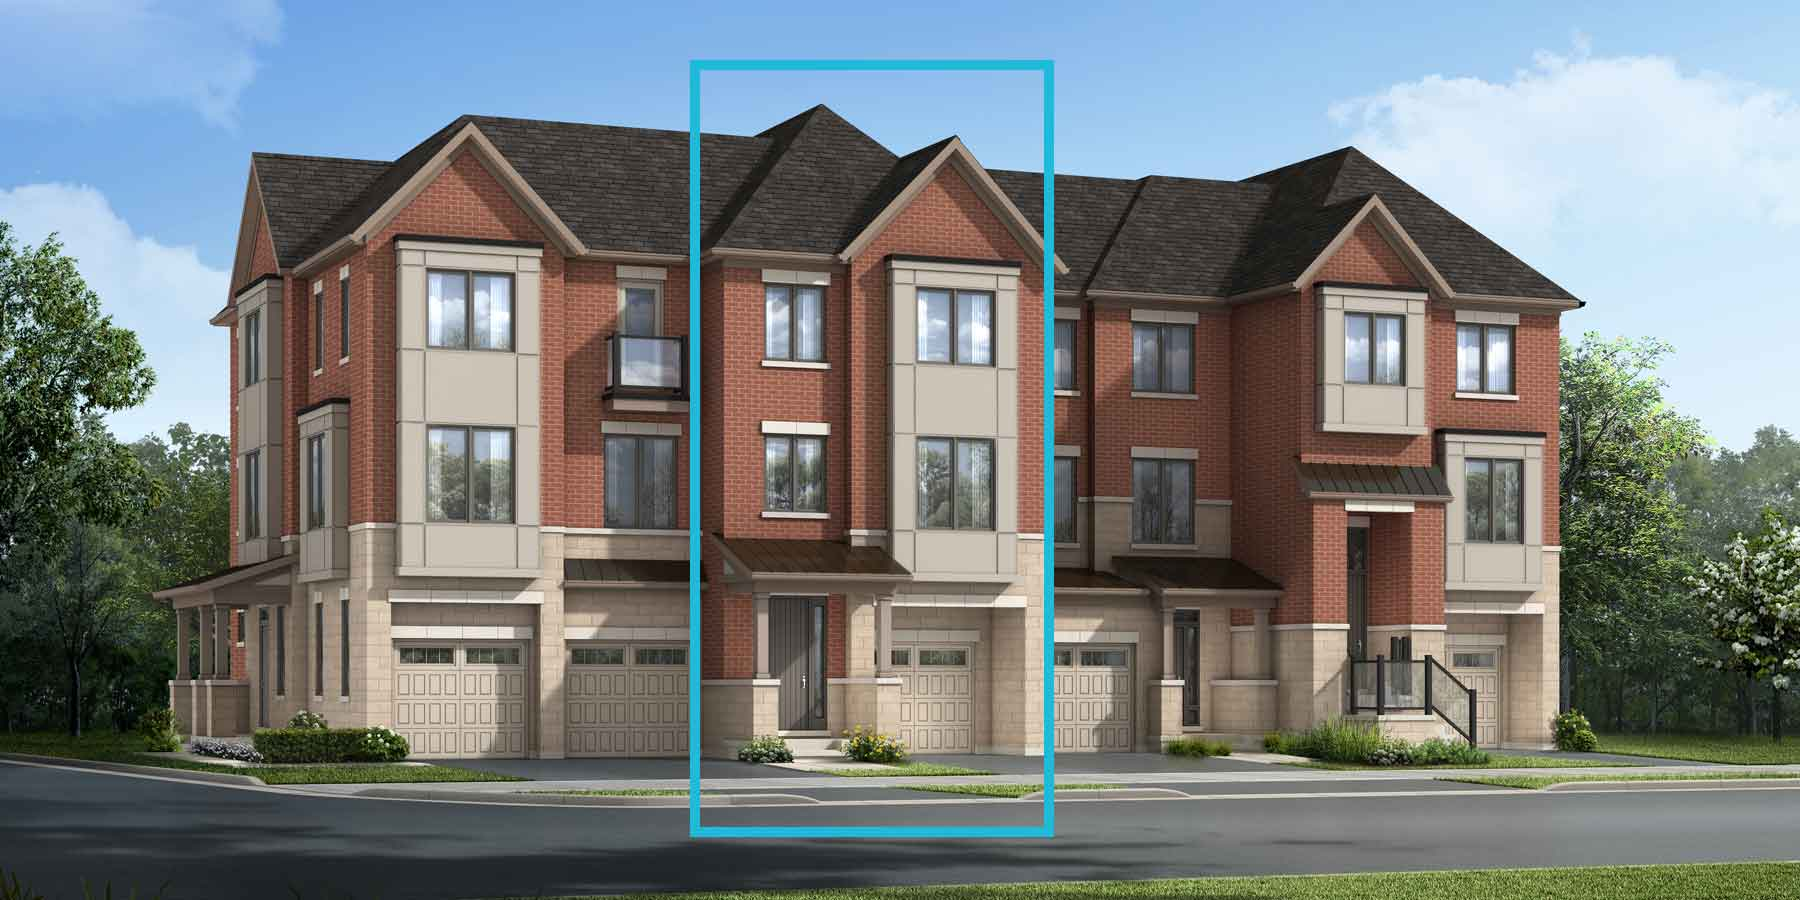 Uxbridge Plan TownHomes at The Nine in Mississauga Ontario by Mattamy Homes